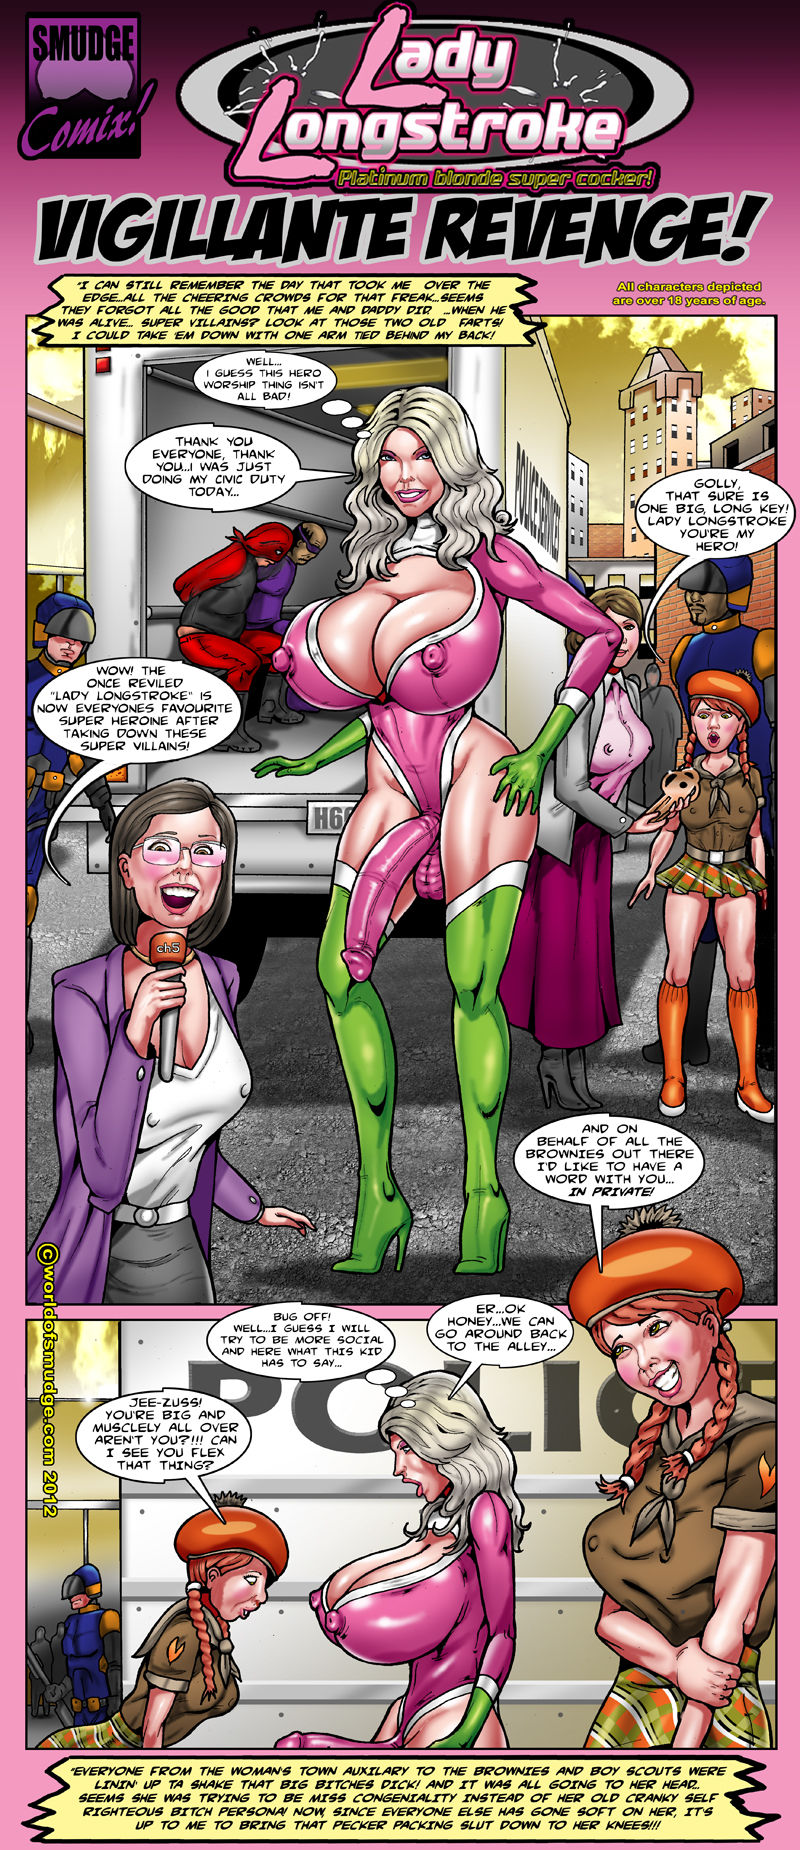 World of smudge big tit brenda free porn comix online